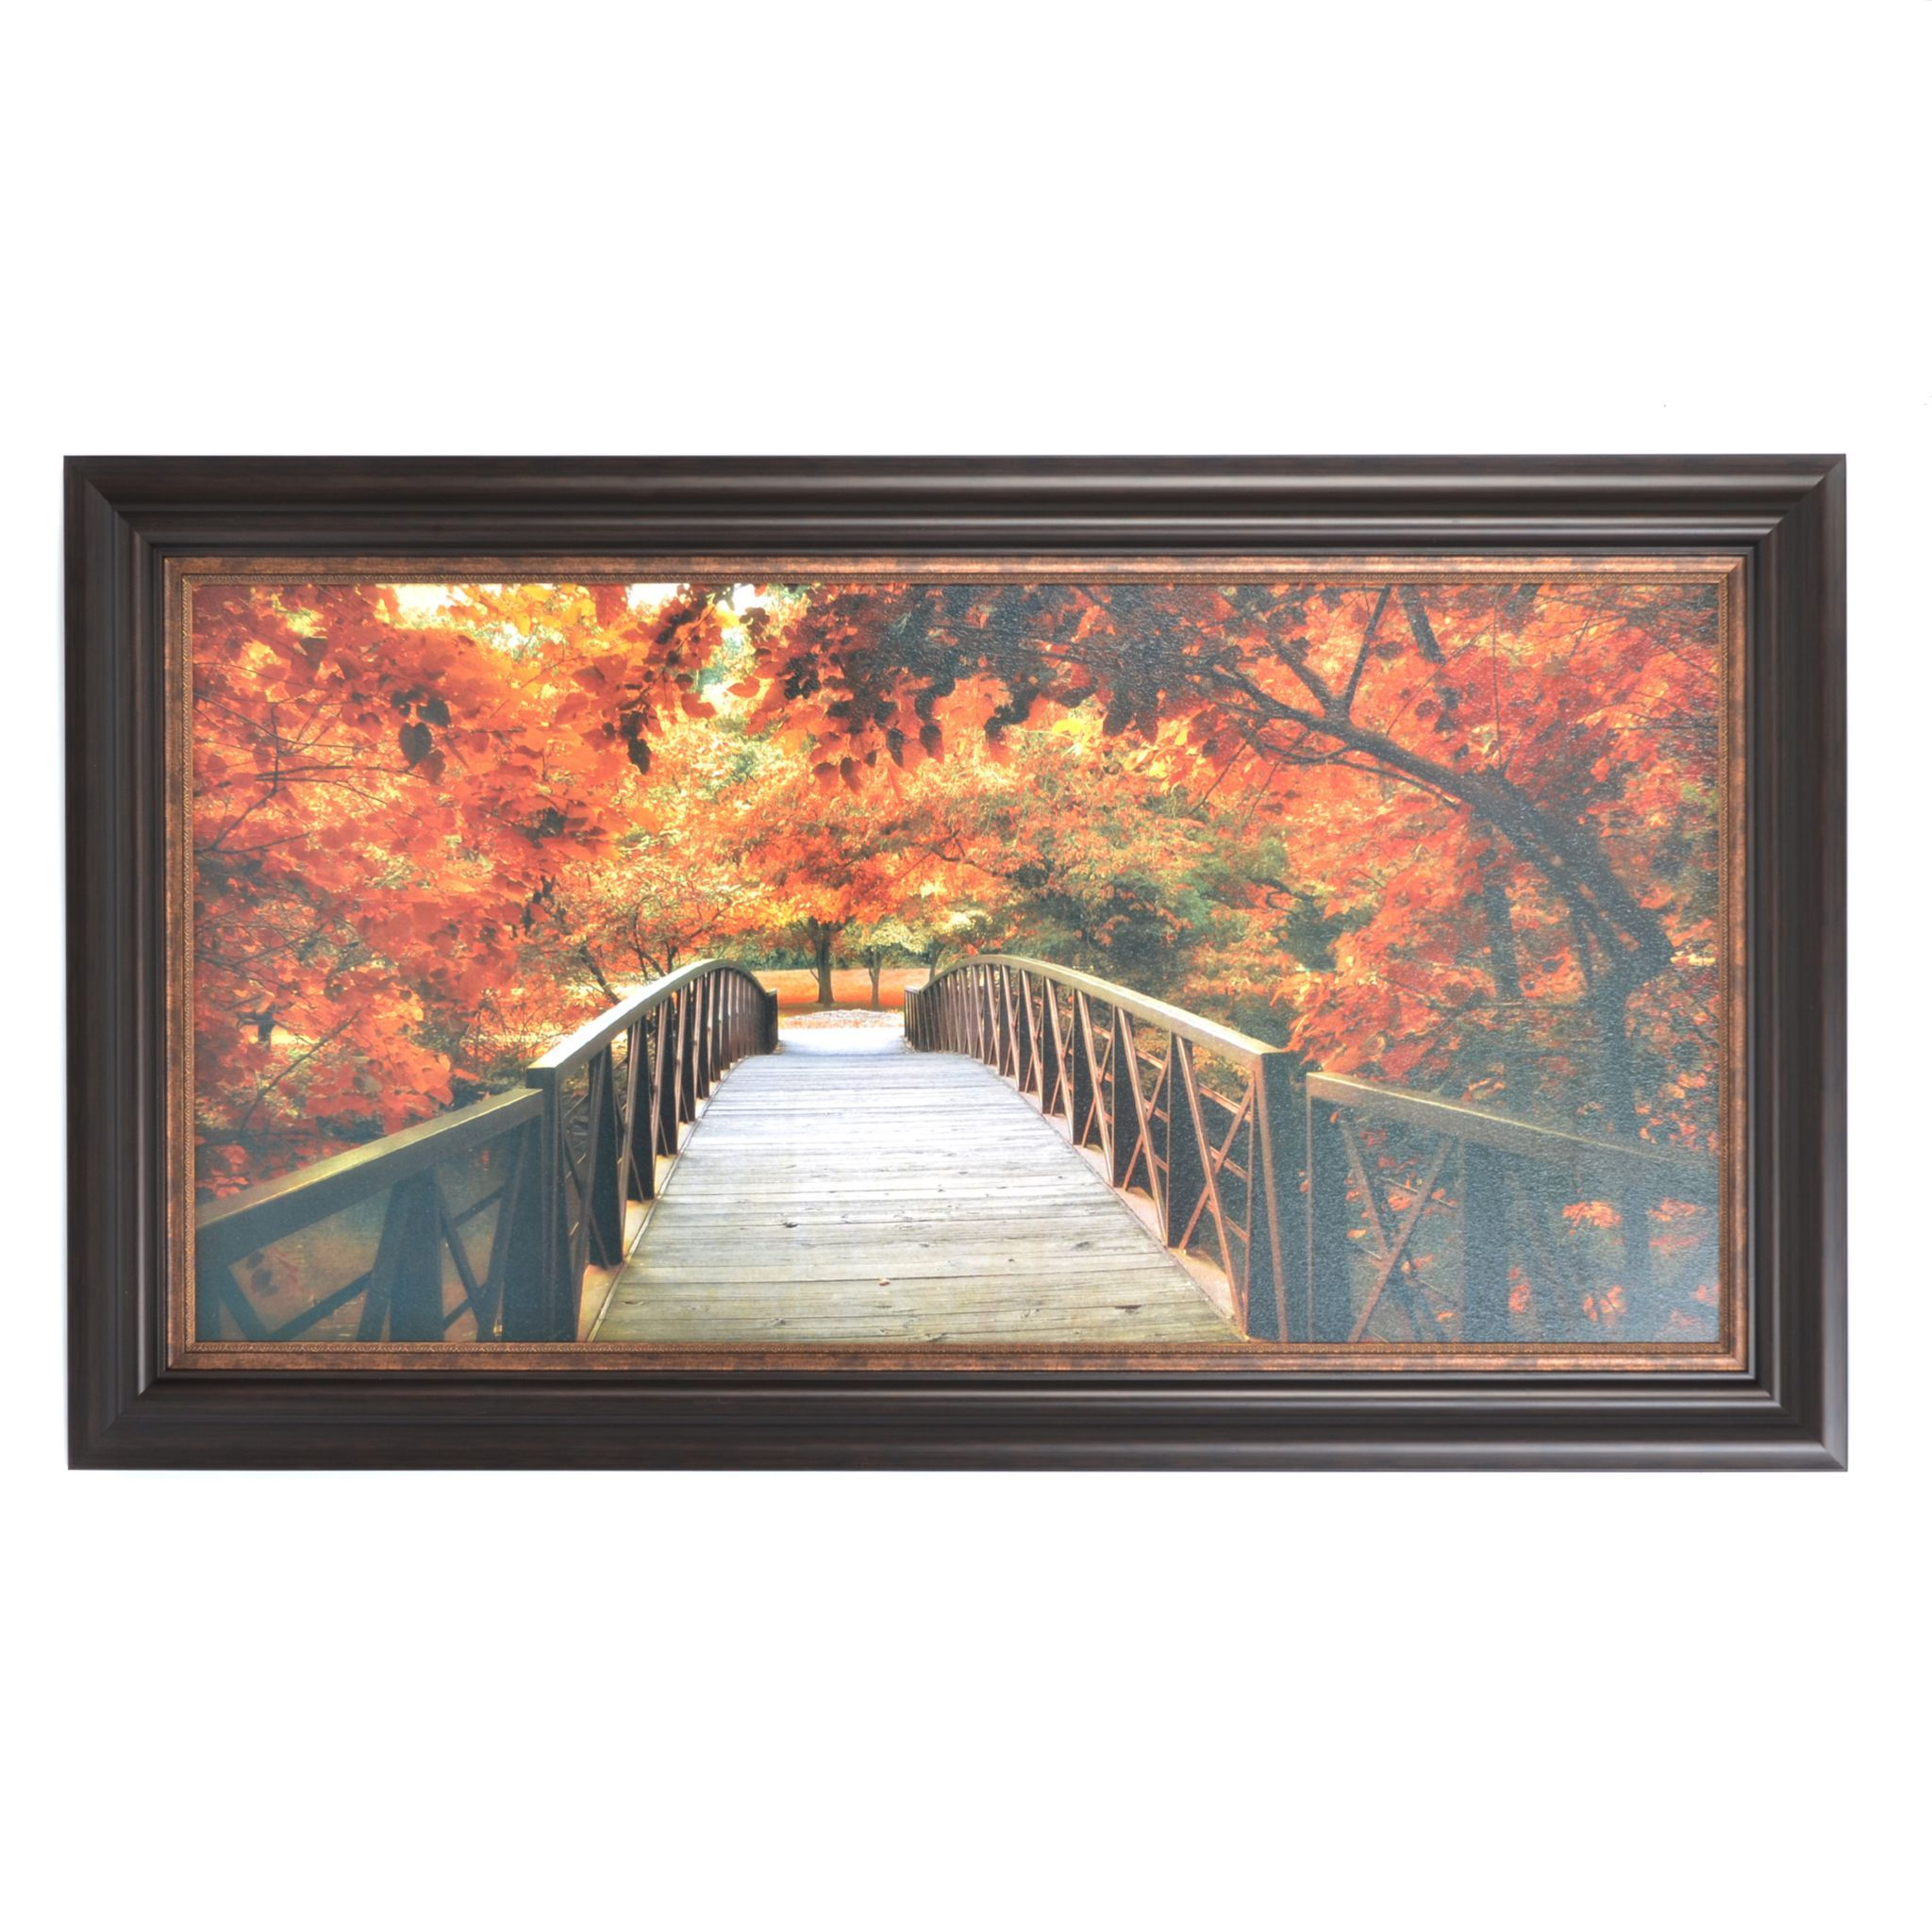 Entrance to Autumn Framed Art Print | Pinterest